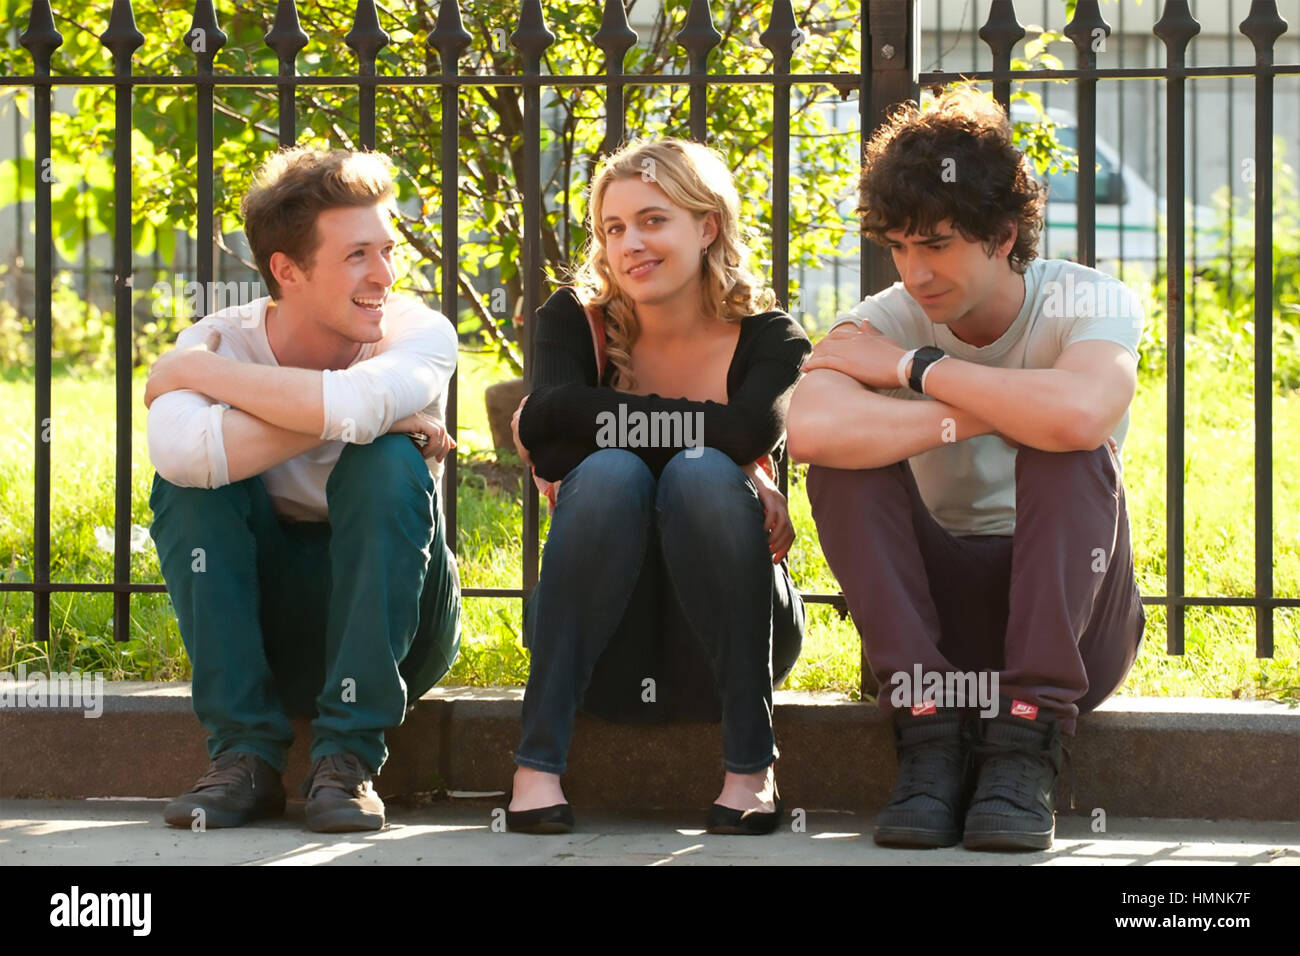 LOLA VERSUS 2012 Groundswell productions films with Greta Gerwig - Stock Image